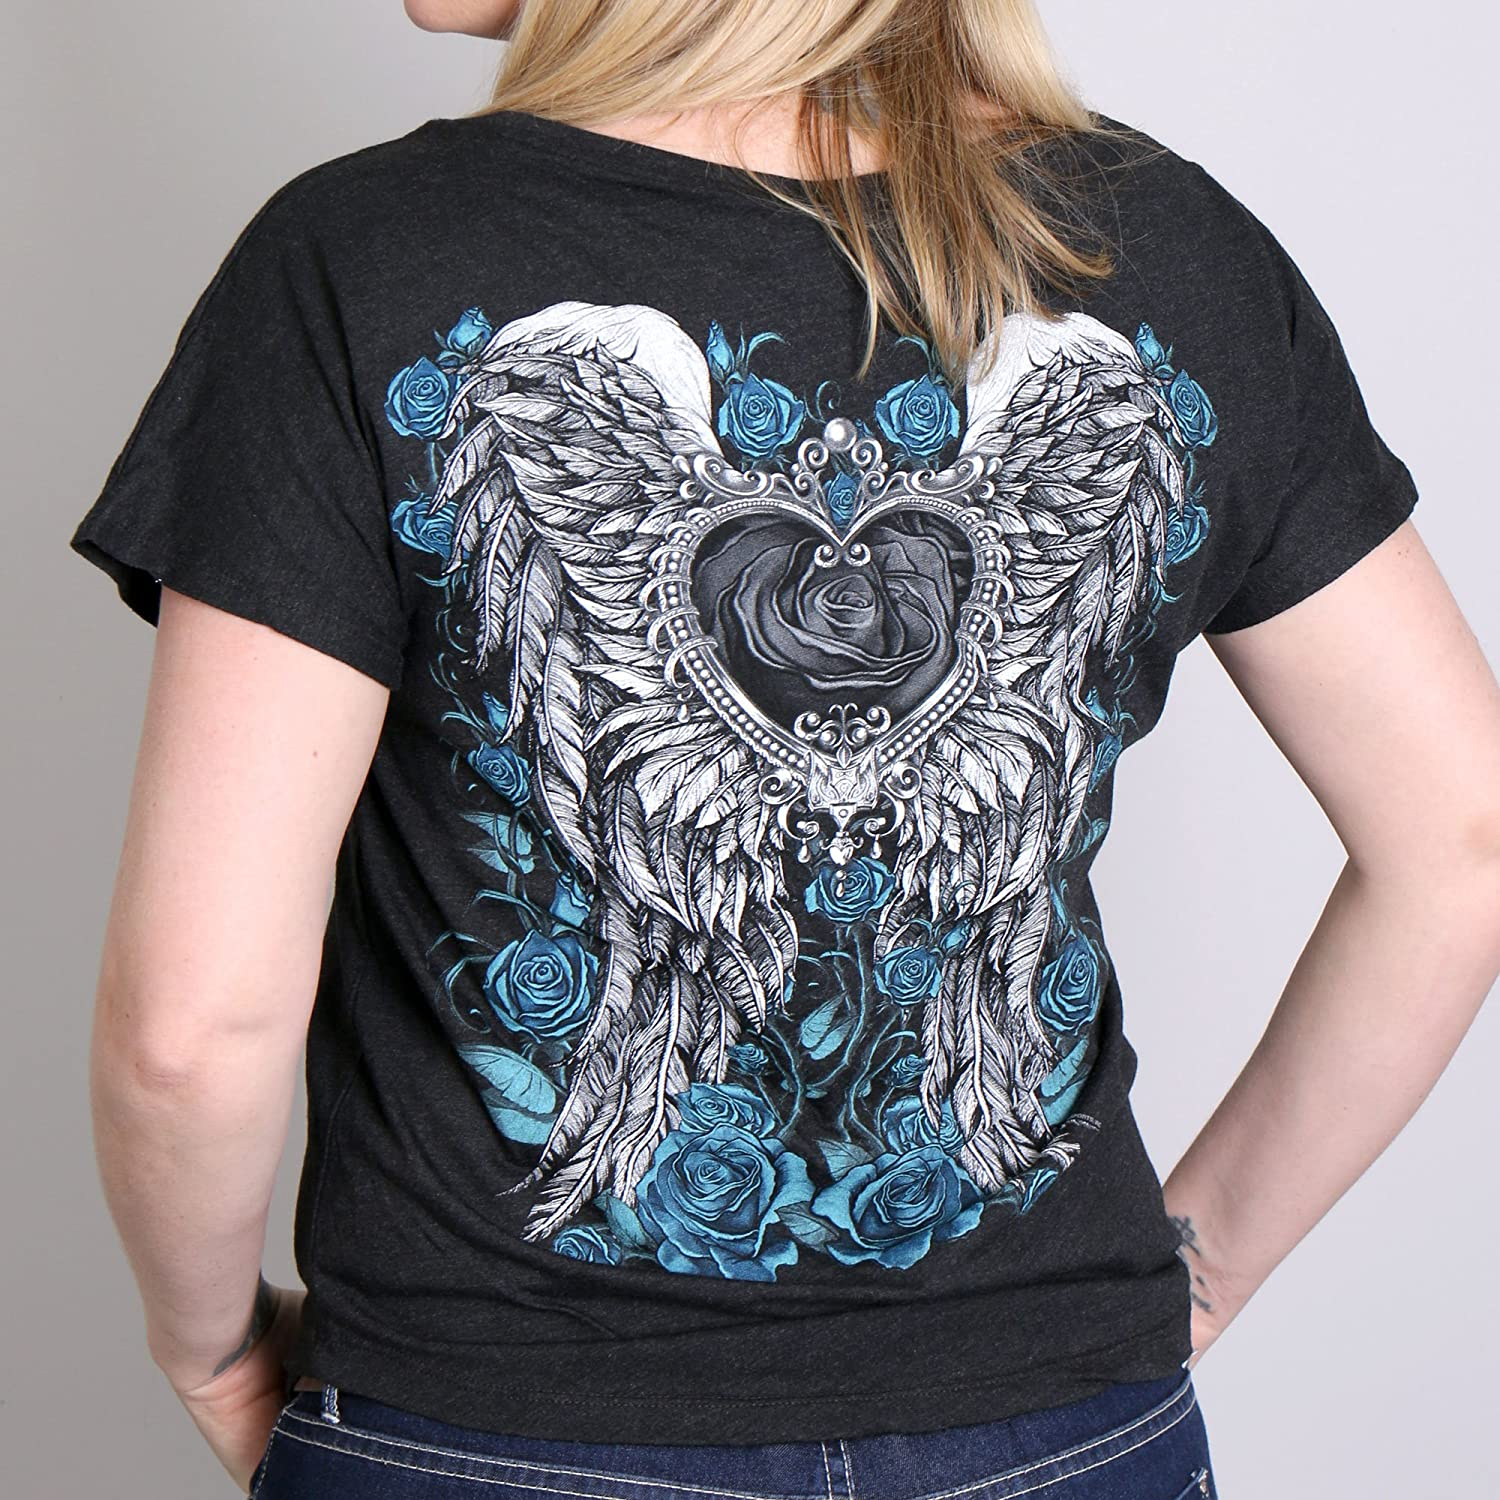 Hot Leathers Womens Angel Roses Dolman Relax Fit Full Cut T-Shirt Vintage Black, Large